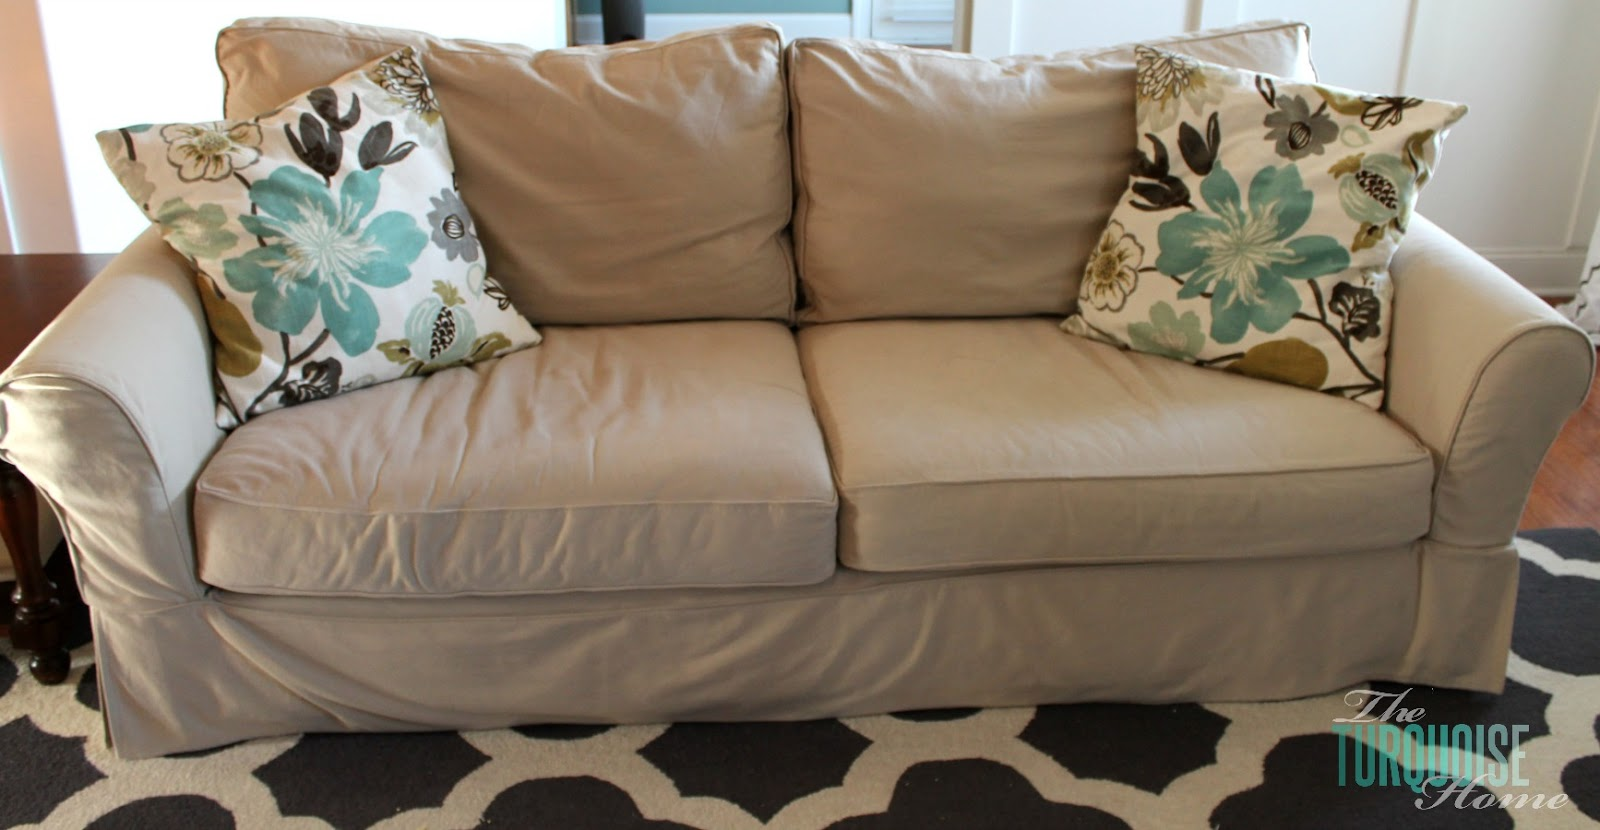 How to Fix Sagging Couch Cushions | Sofa Pillow Stuffing | Restuffing Couch Cushions